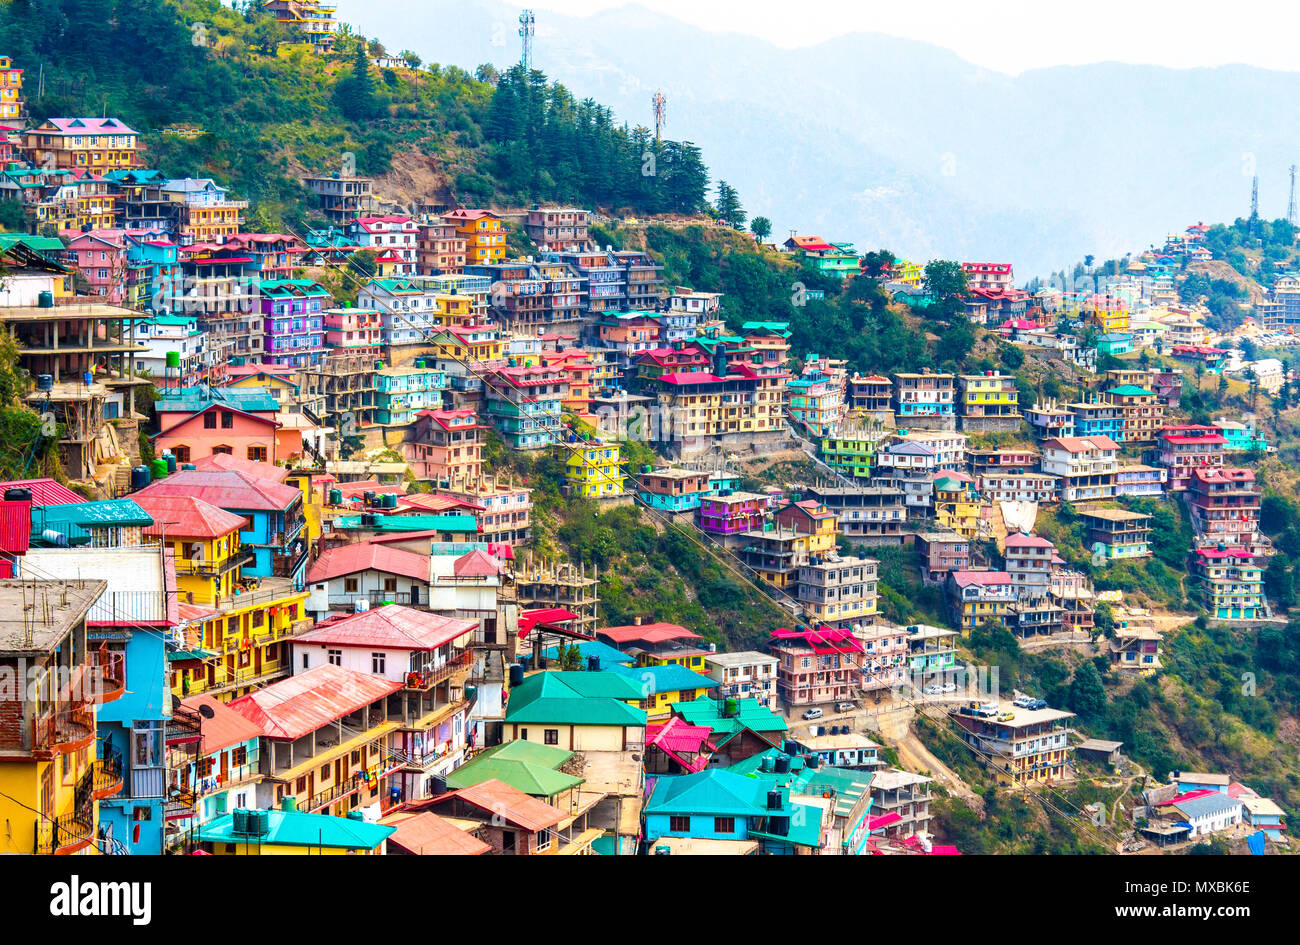 Not Brazil Nor Argentina Its my India. The beautiful landscape of Shimla situated in Himachal Pradesh. - Stock Image